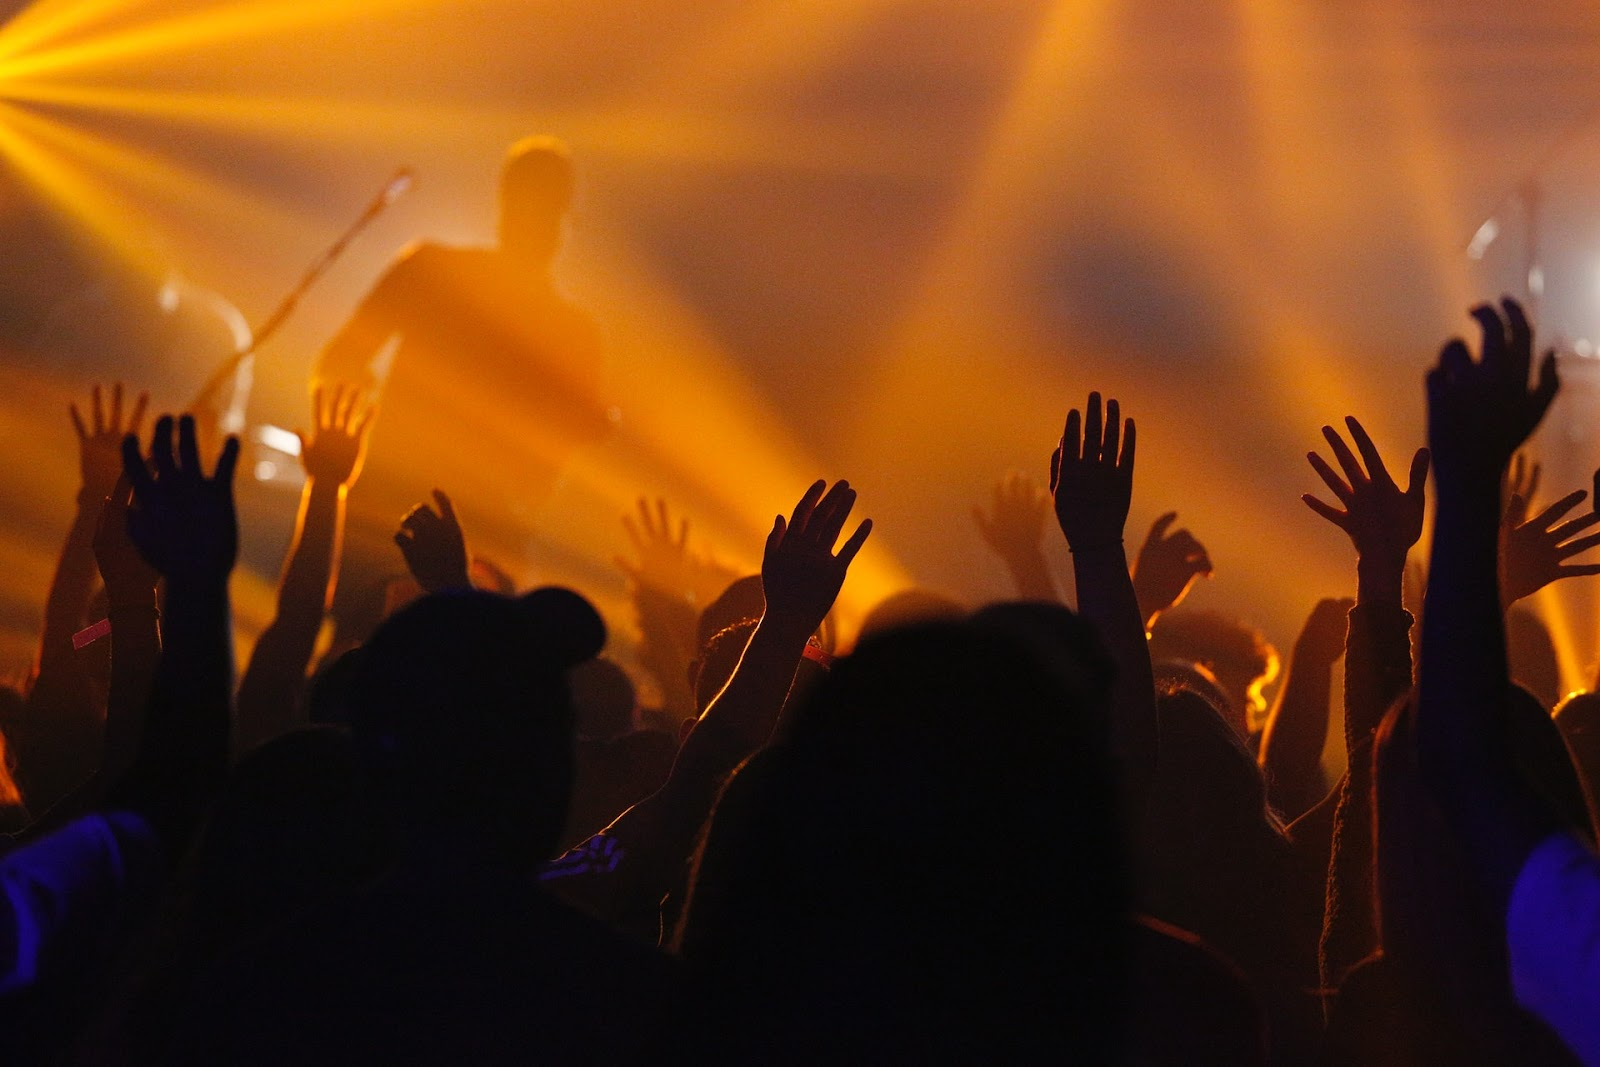 Image of people at concert